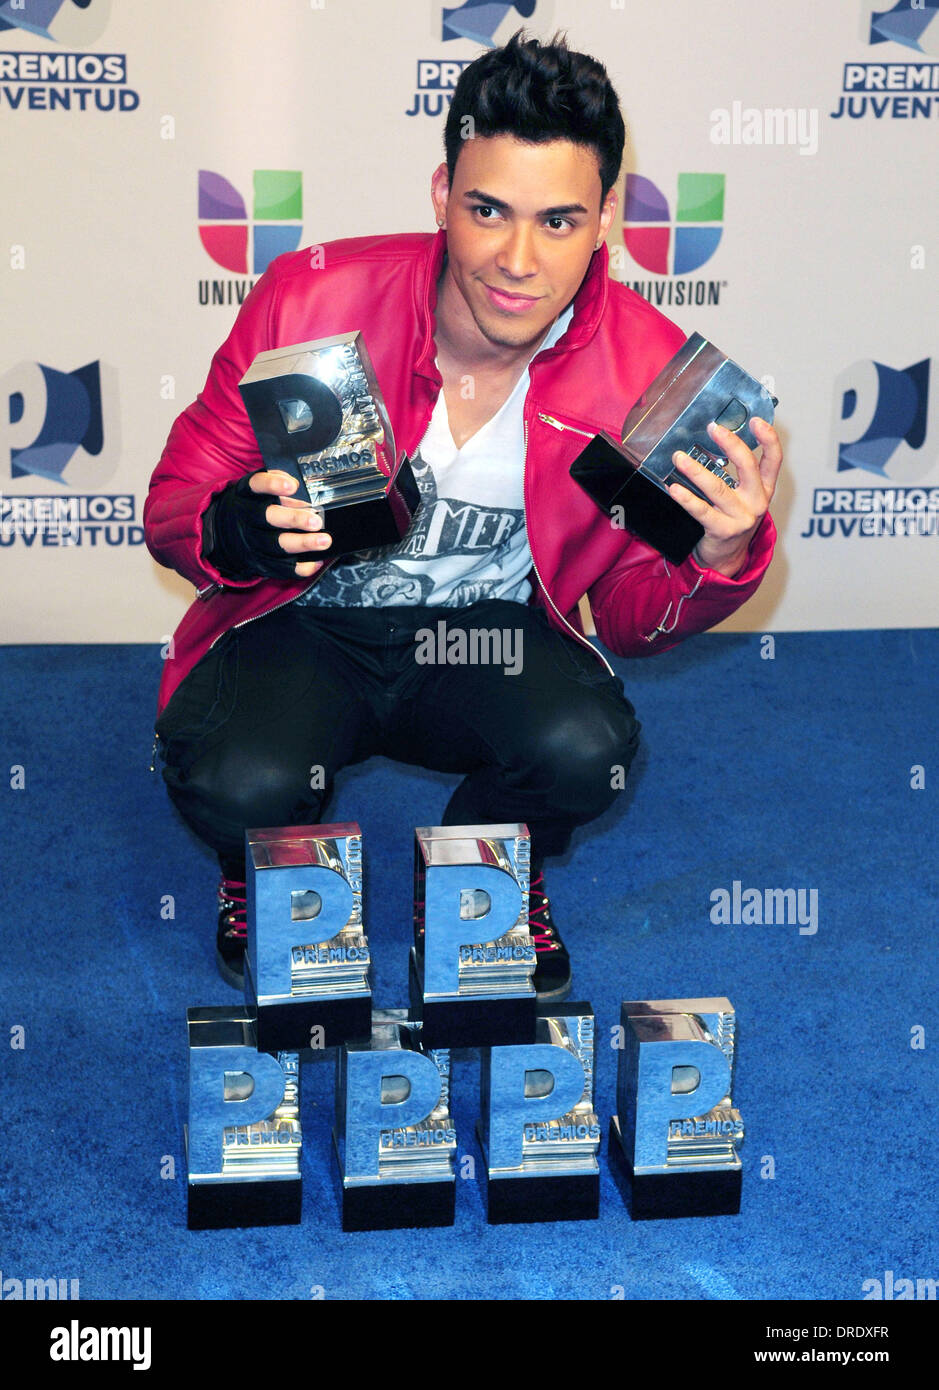 Prince Royce Univision's Premios Juventud Awards at Bank ...